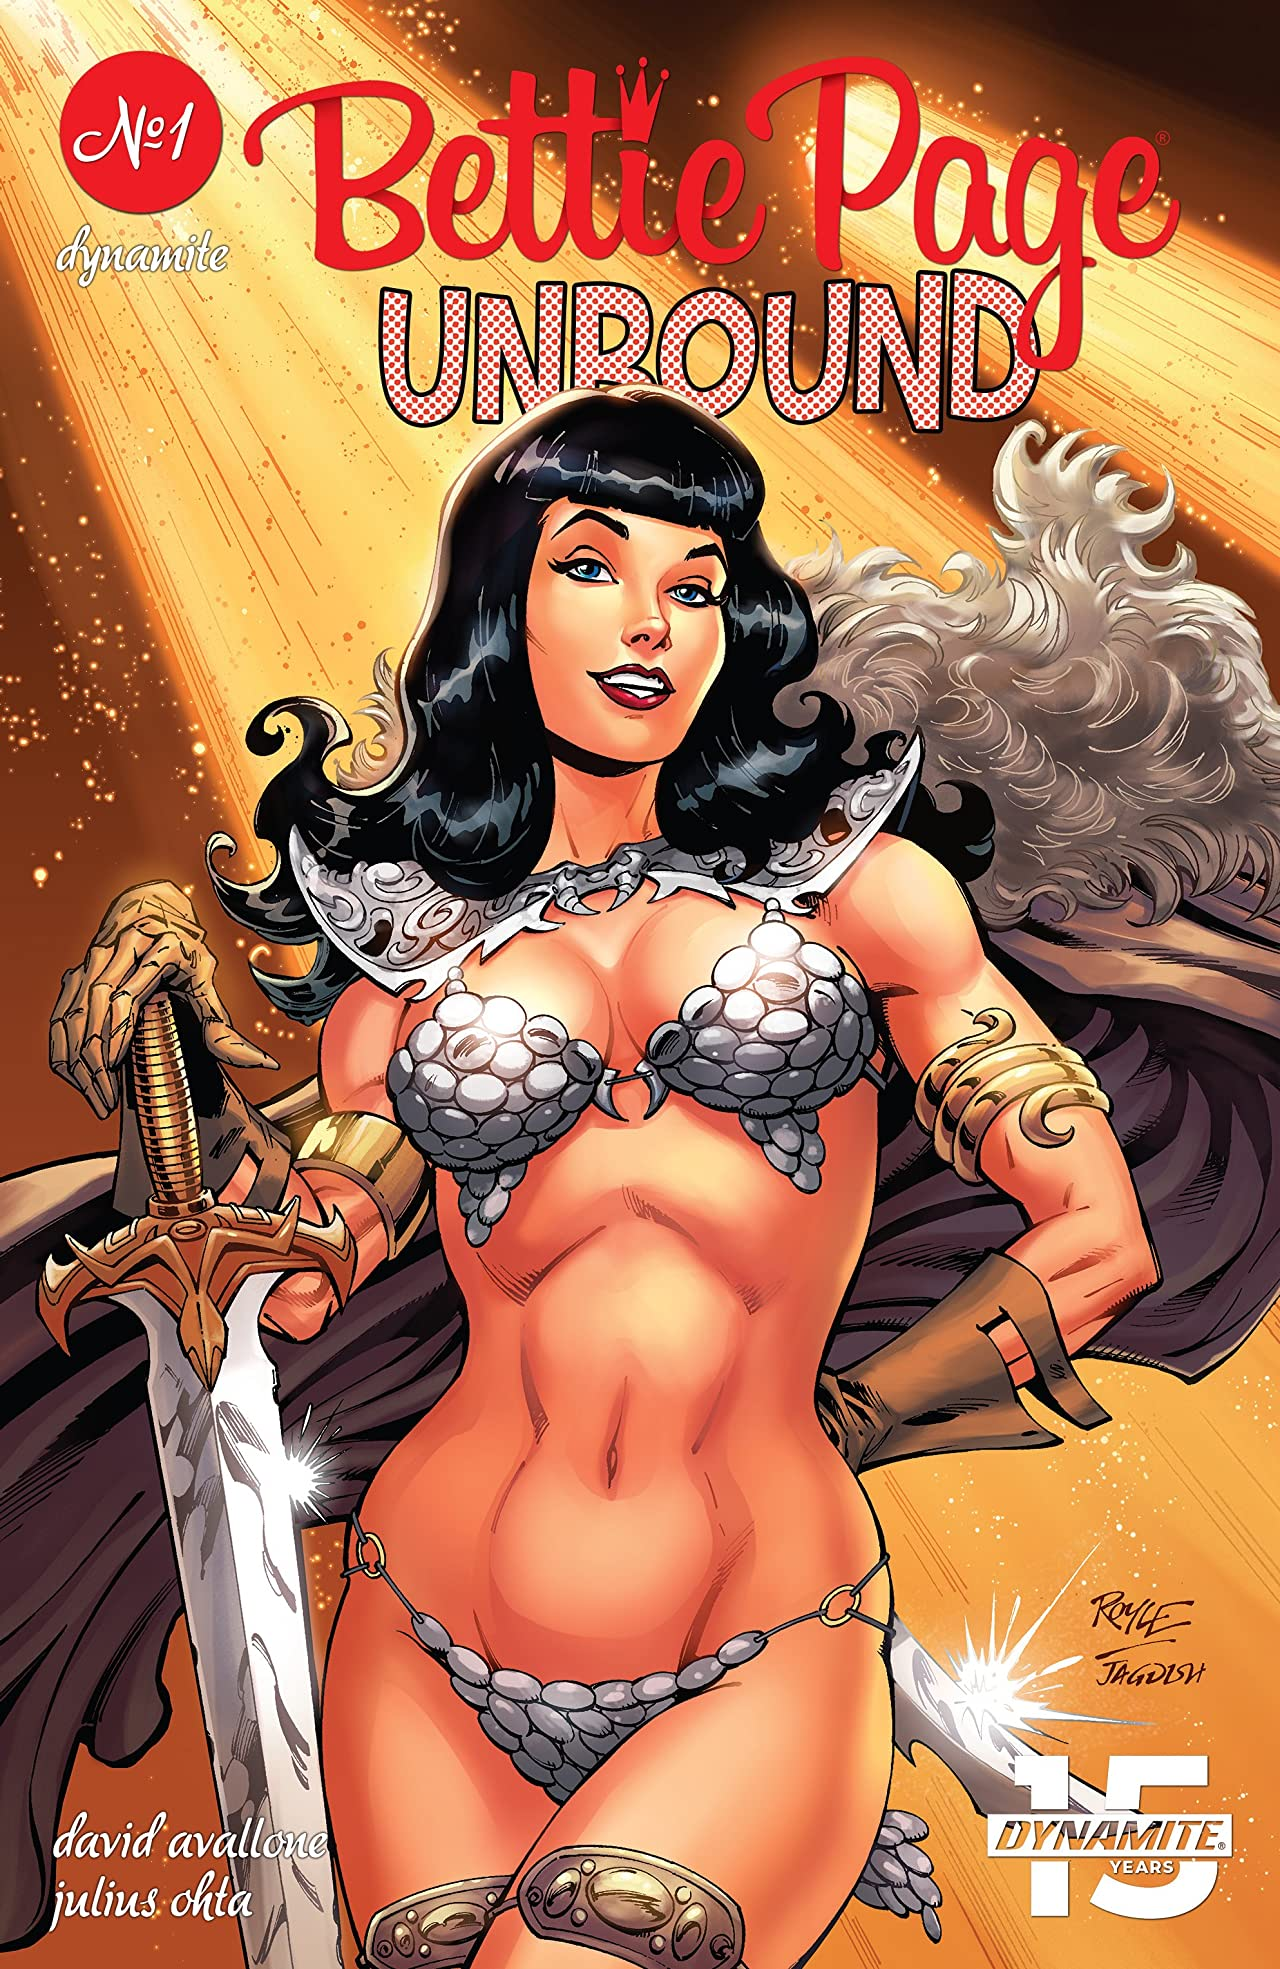 Bettie Page: Unbound No.1